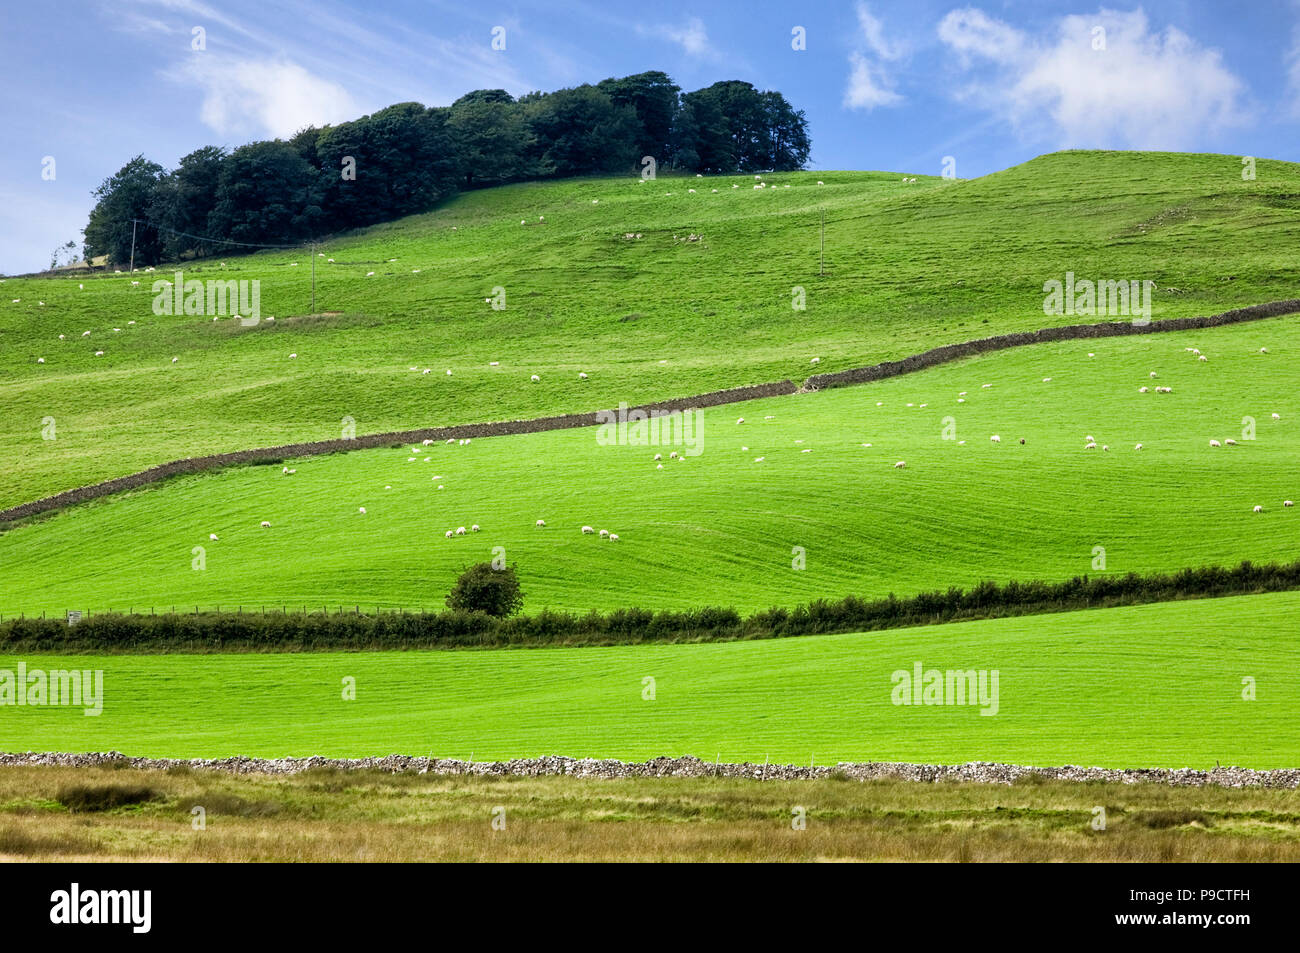 Green fields field and hills at Caldbeck in the Lake District National Park, Cumbria, England, UK - Stock Image